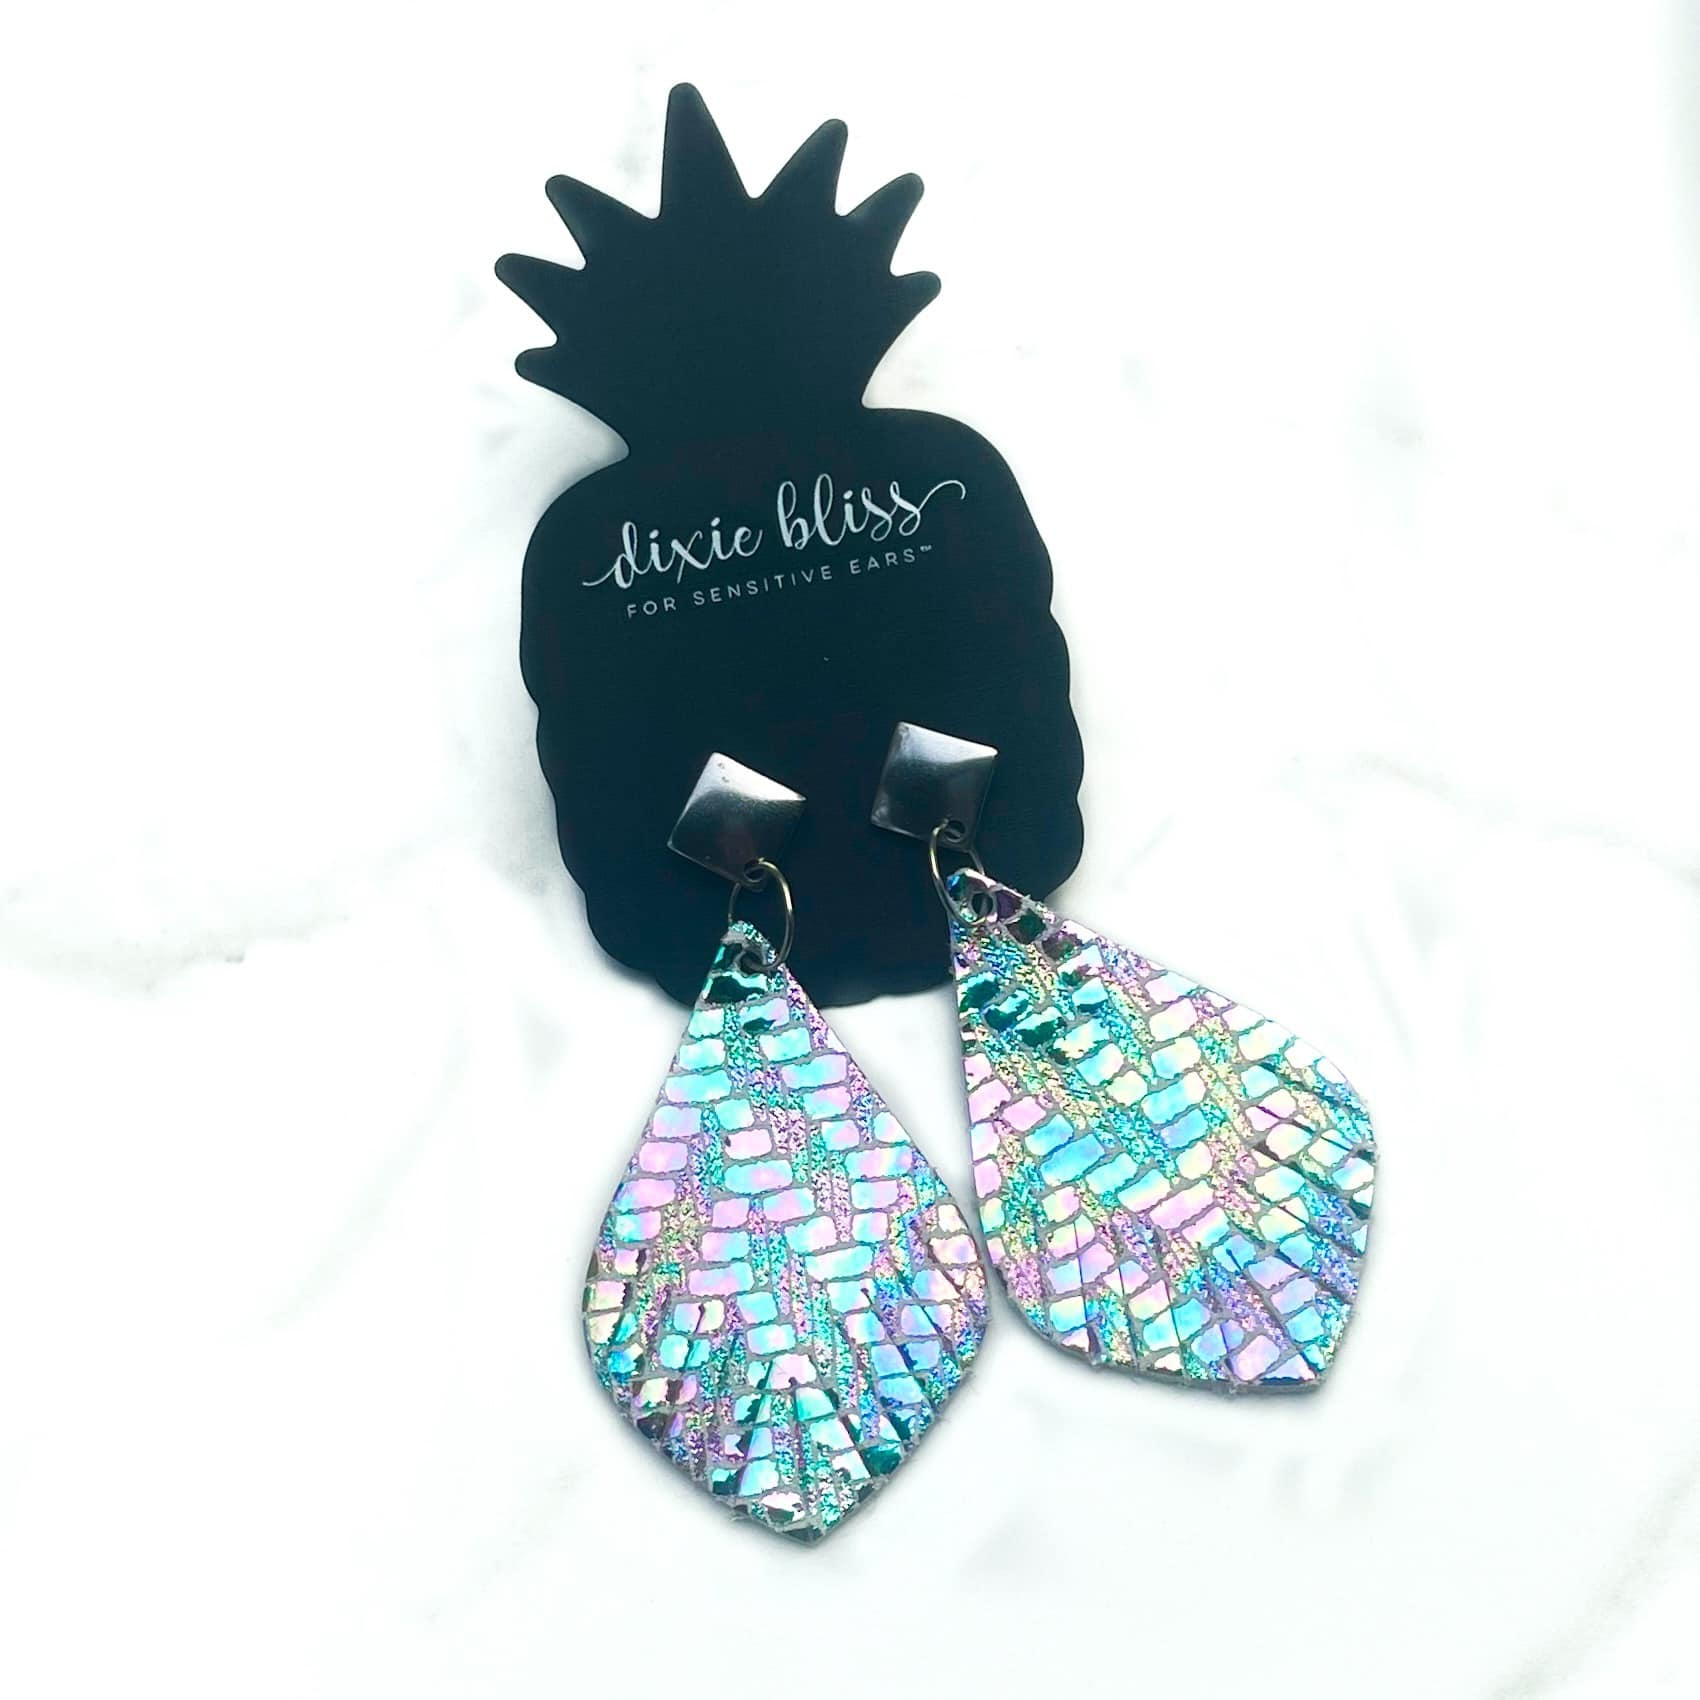 Shannon | Earrings for Sensitive Ears - Sandy Bums Boutique